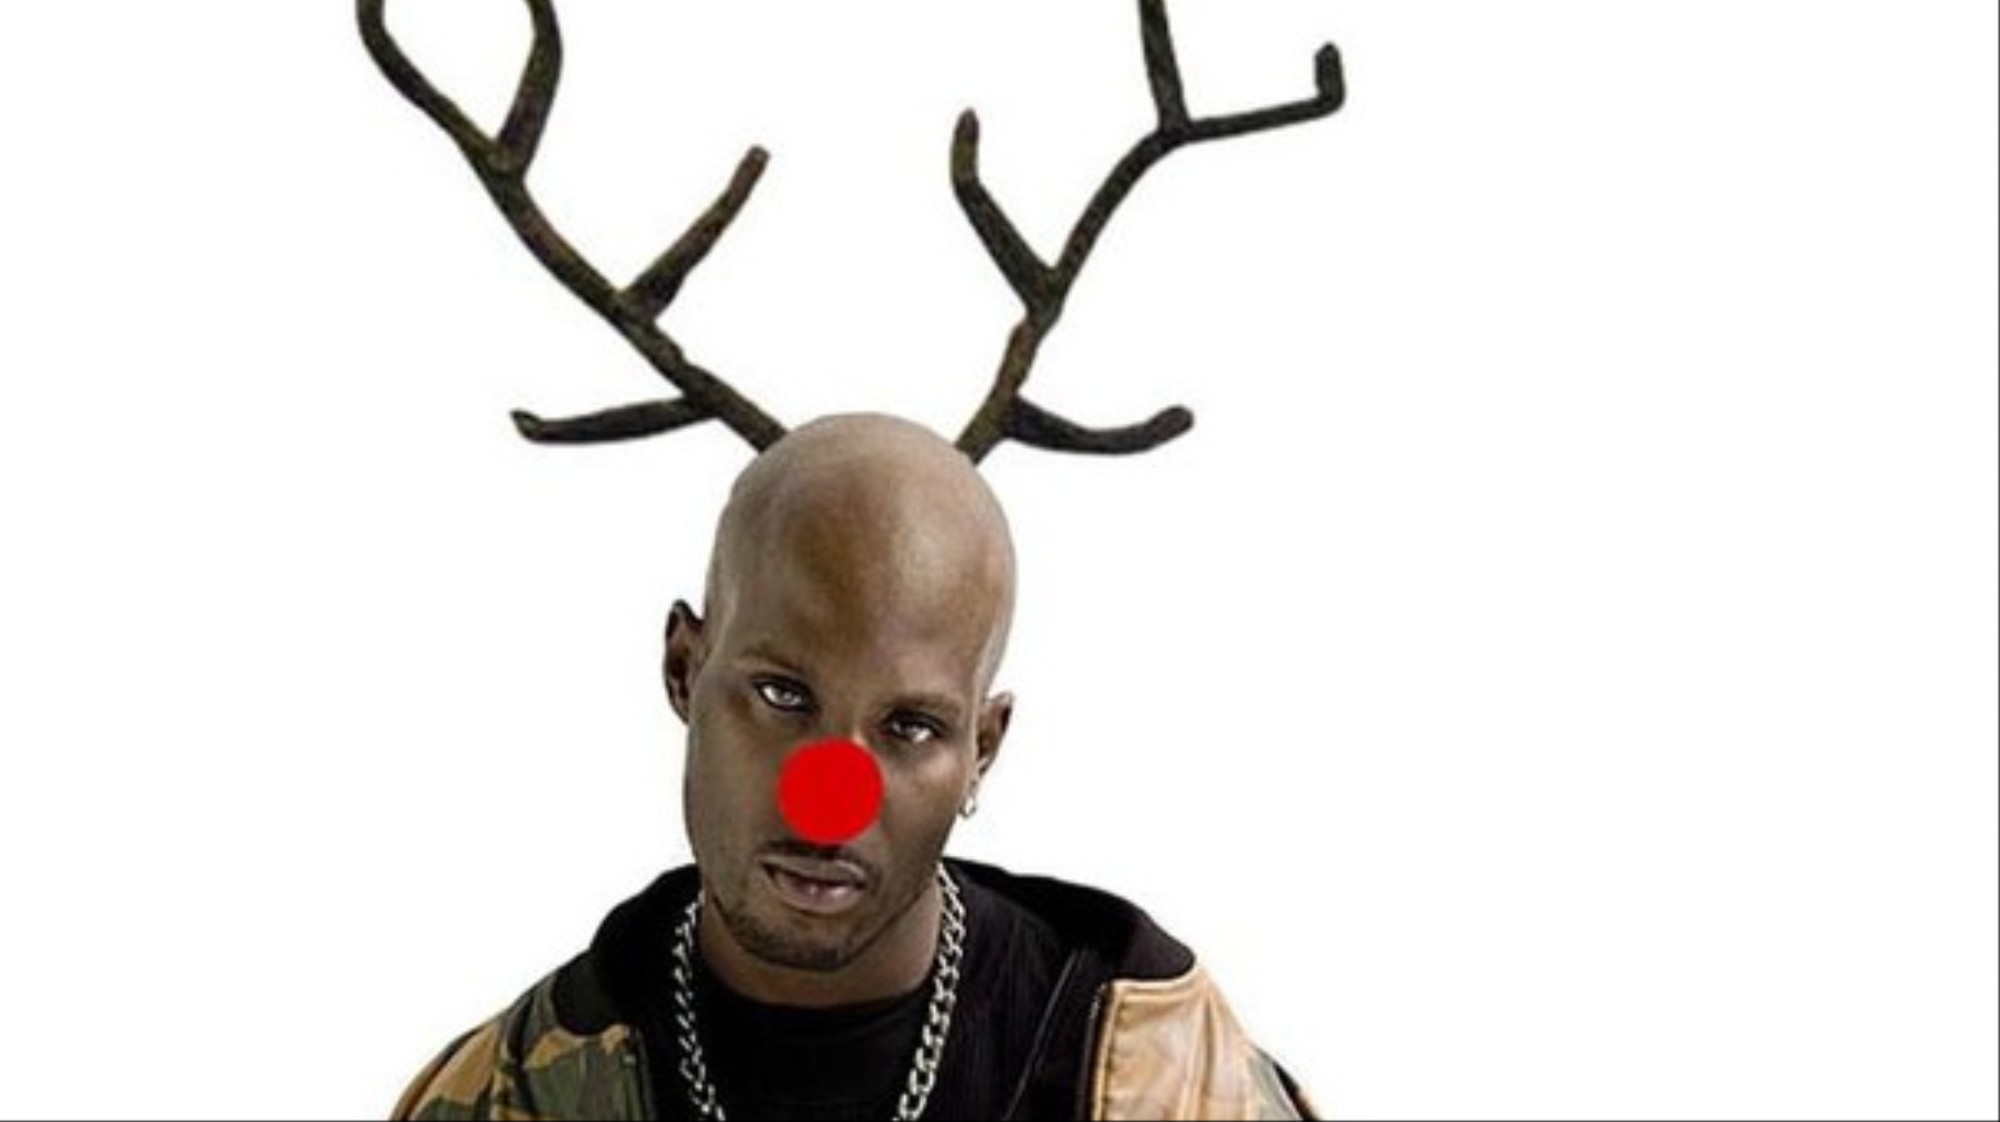 Dmx Christmas.This Christmas We Need To Embrace The Spirit Of Dmx Singing